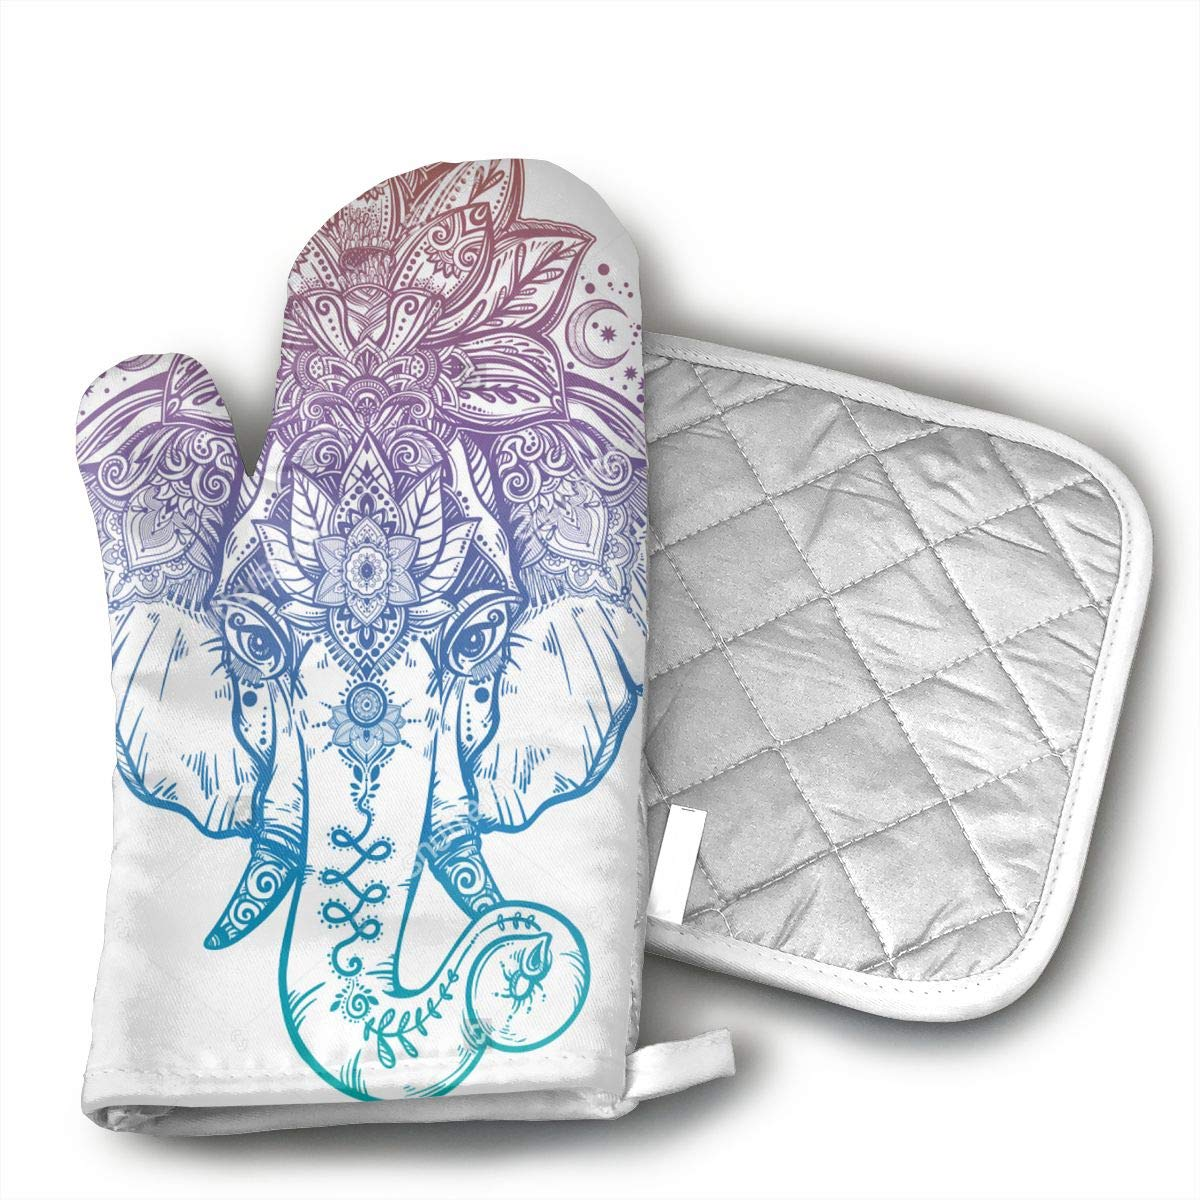 Ubnz17X Vintage Elephant Indian Oven Mitts and Pot Holders for Kitchen Set with Cotton Non-Slip Grip,Heat Resistant